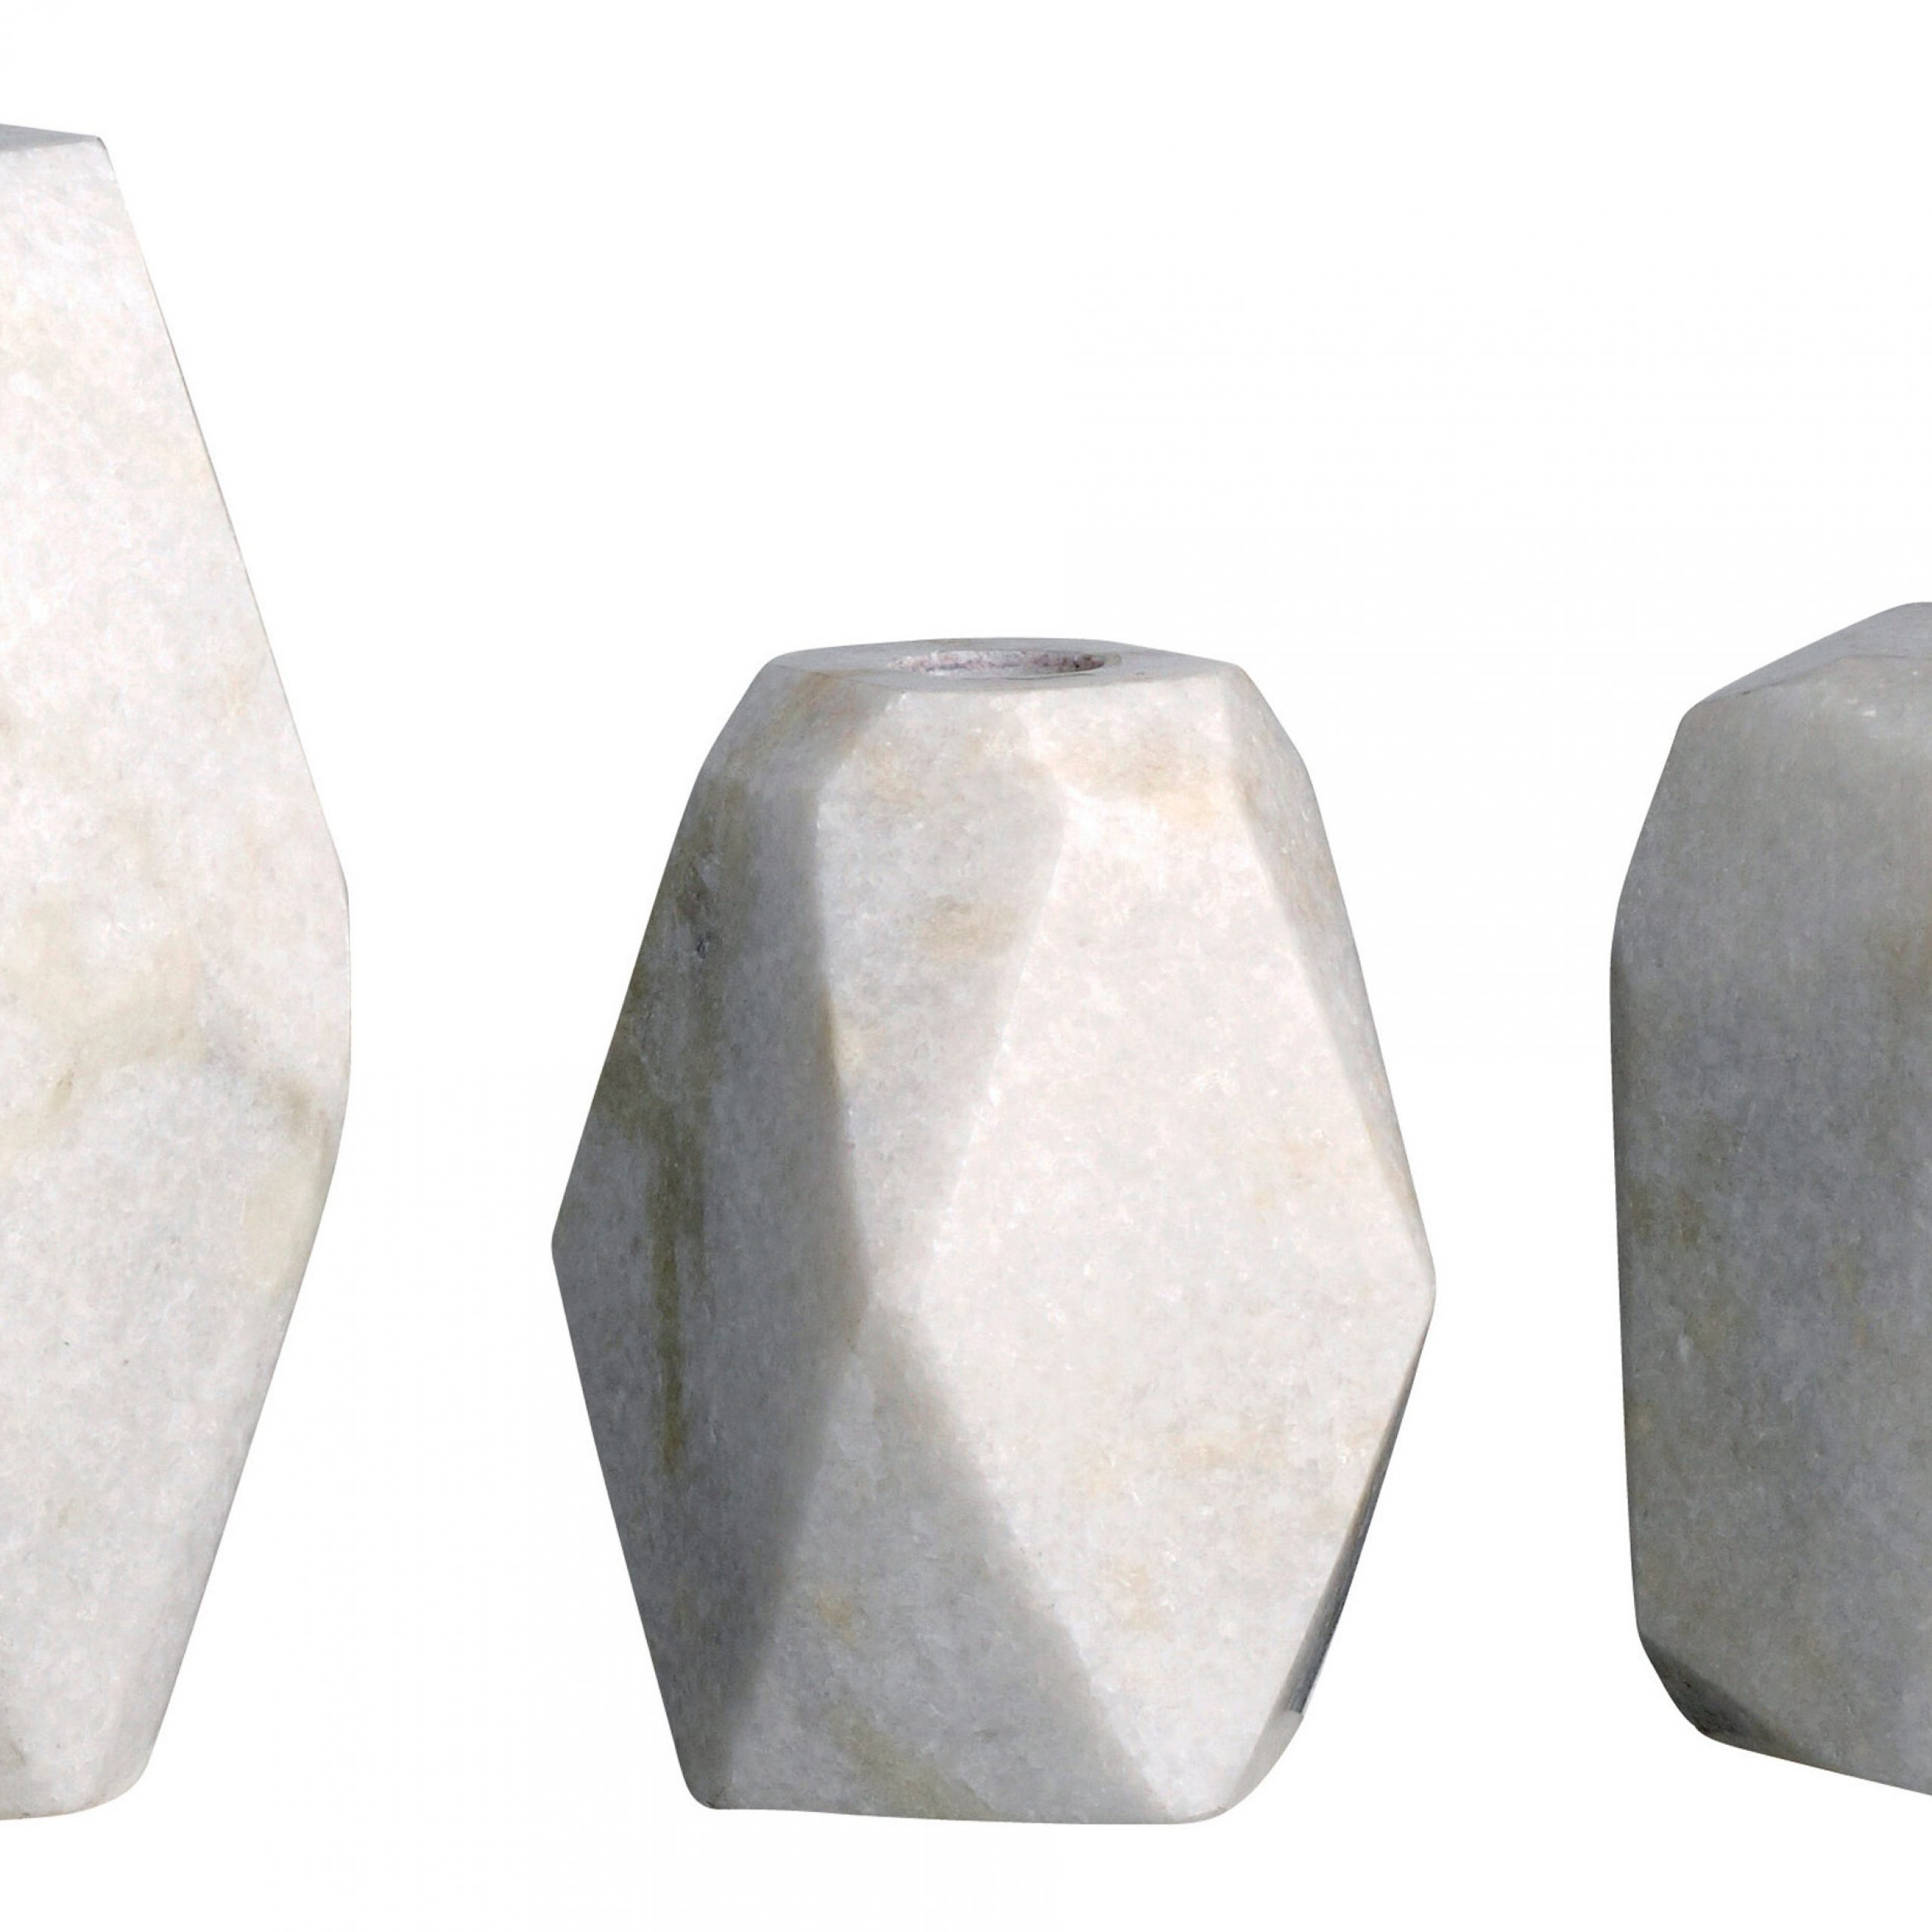 Harwich Ceramic Garden Stools Throughout Most Current Harwich 3 Piece Stone Candlestick Set (View 16 of 30)